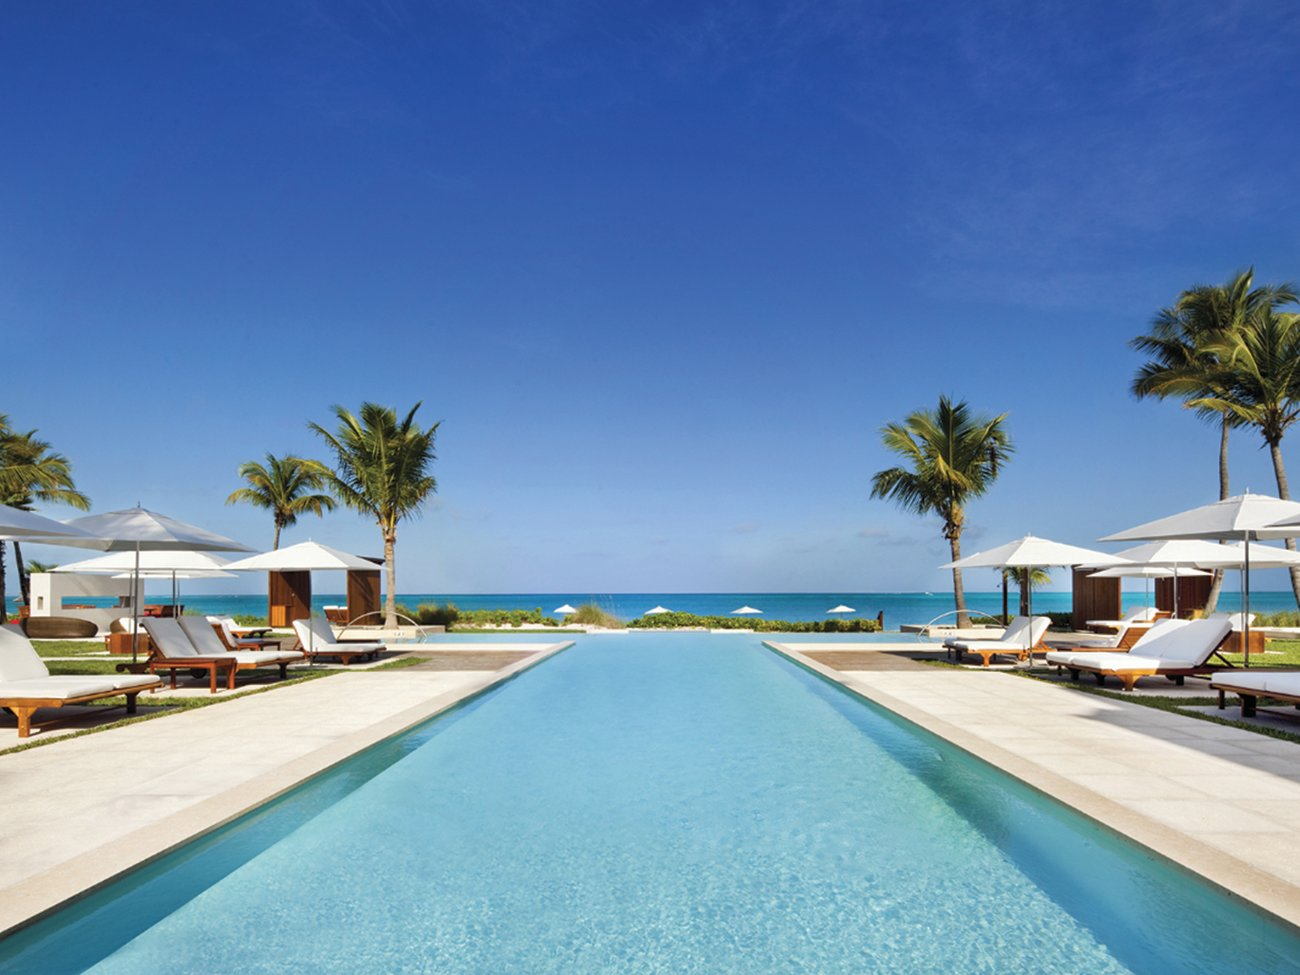 Grace Bay Club Hotel in Turks and Caicos